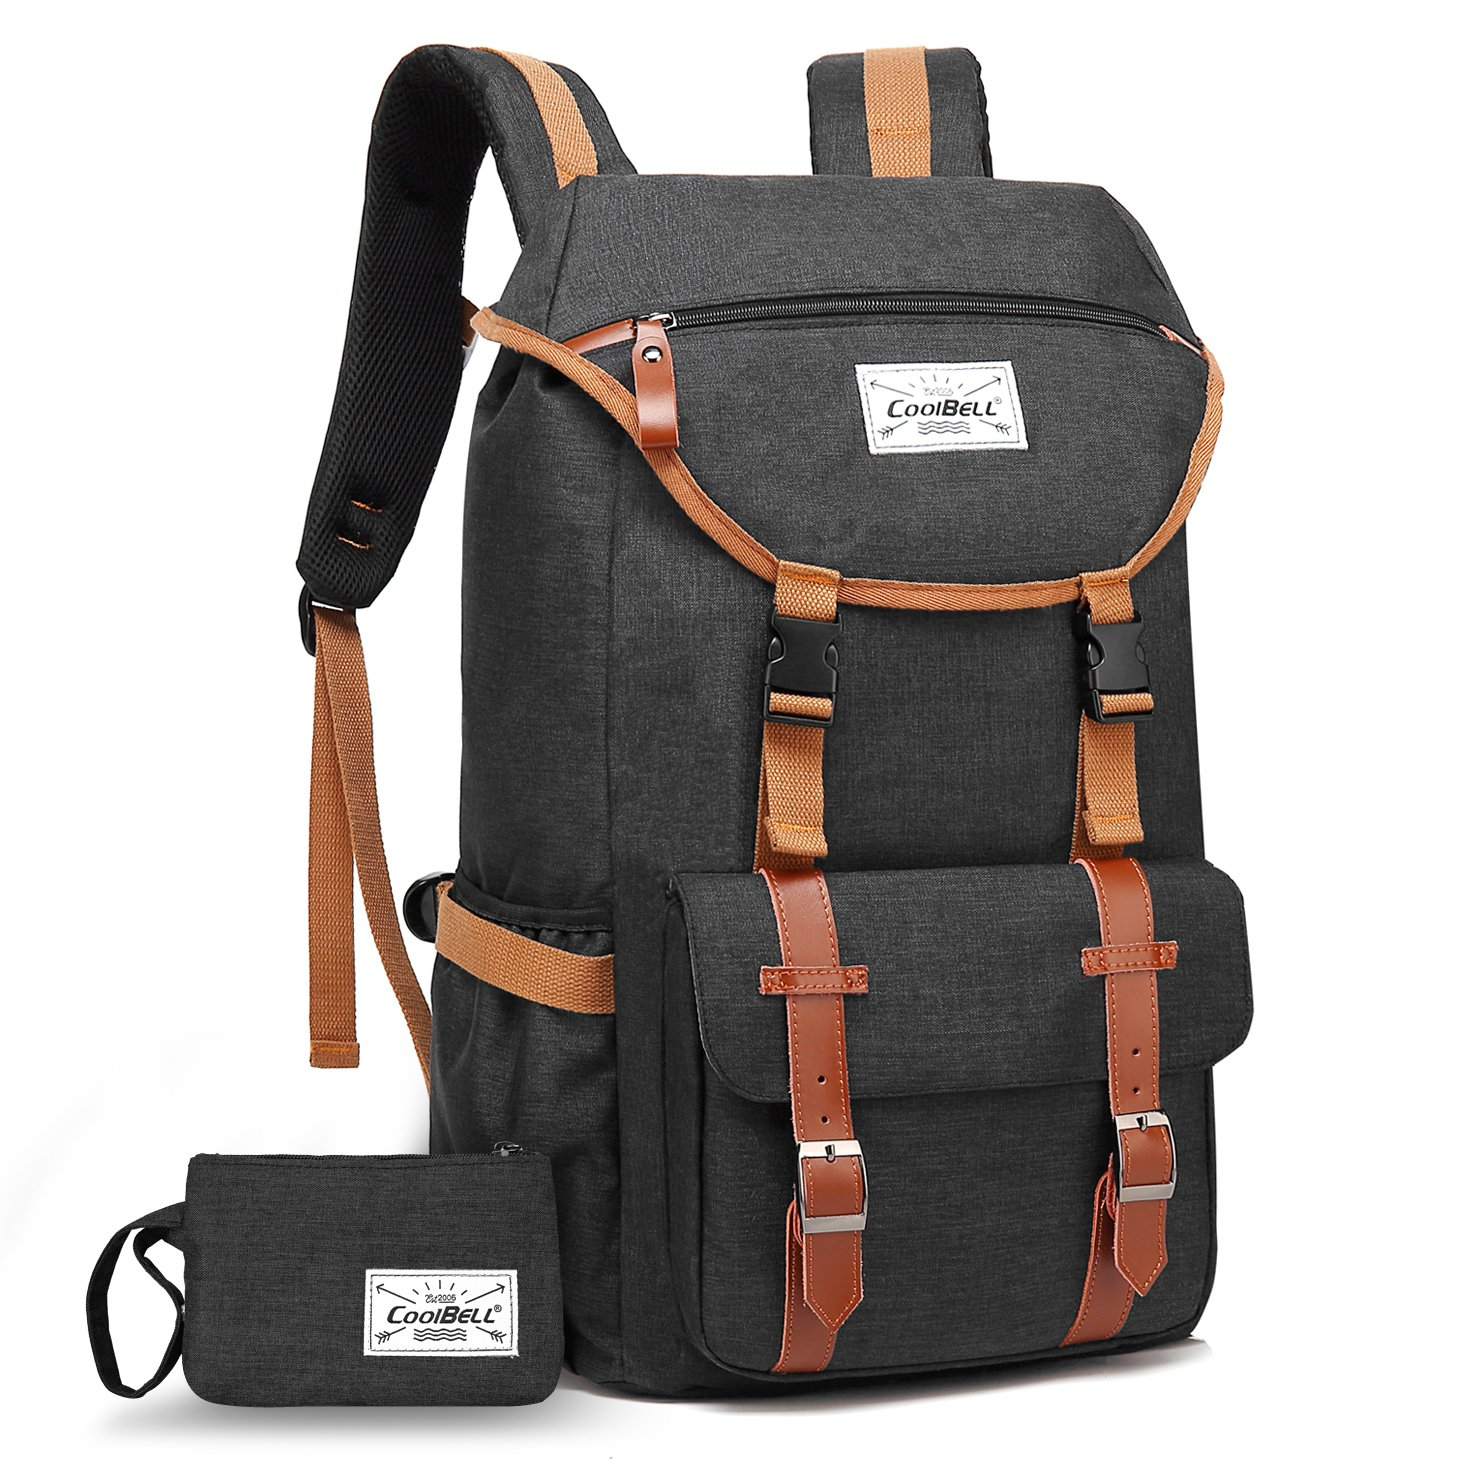 Travel Backpack CoolBELL 17.3 Inches Laptop Backpack Leisure Outdoor Rucksack Hiking Knapsack School Daypack Multi-functional Business Bag For School/College/Men/Women (38L, Black) by CoolBELL (Image #1)